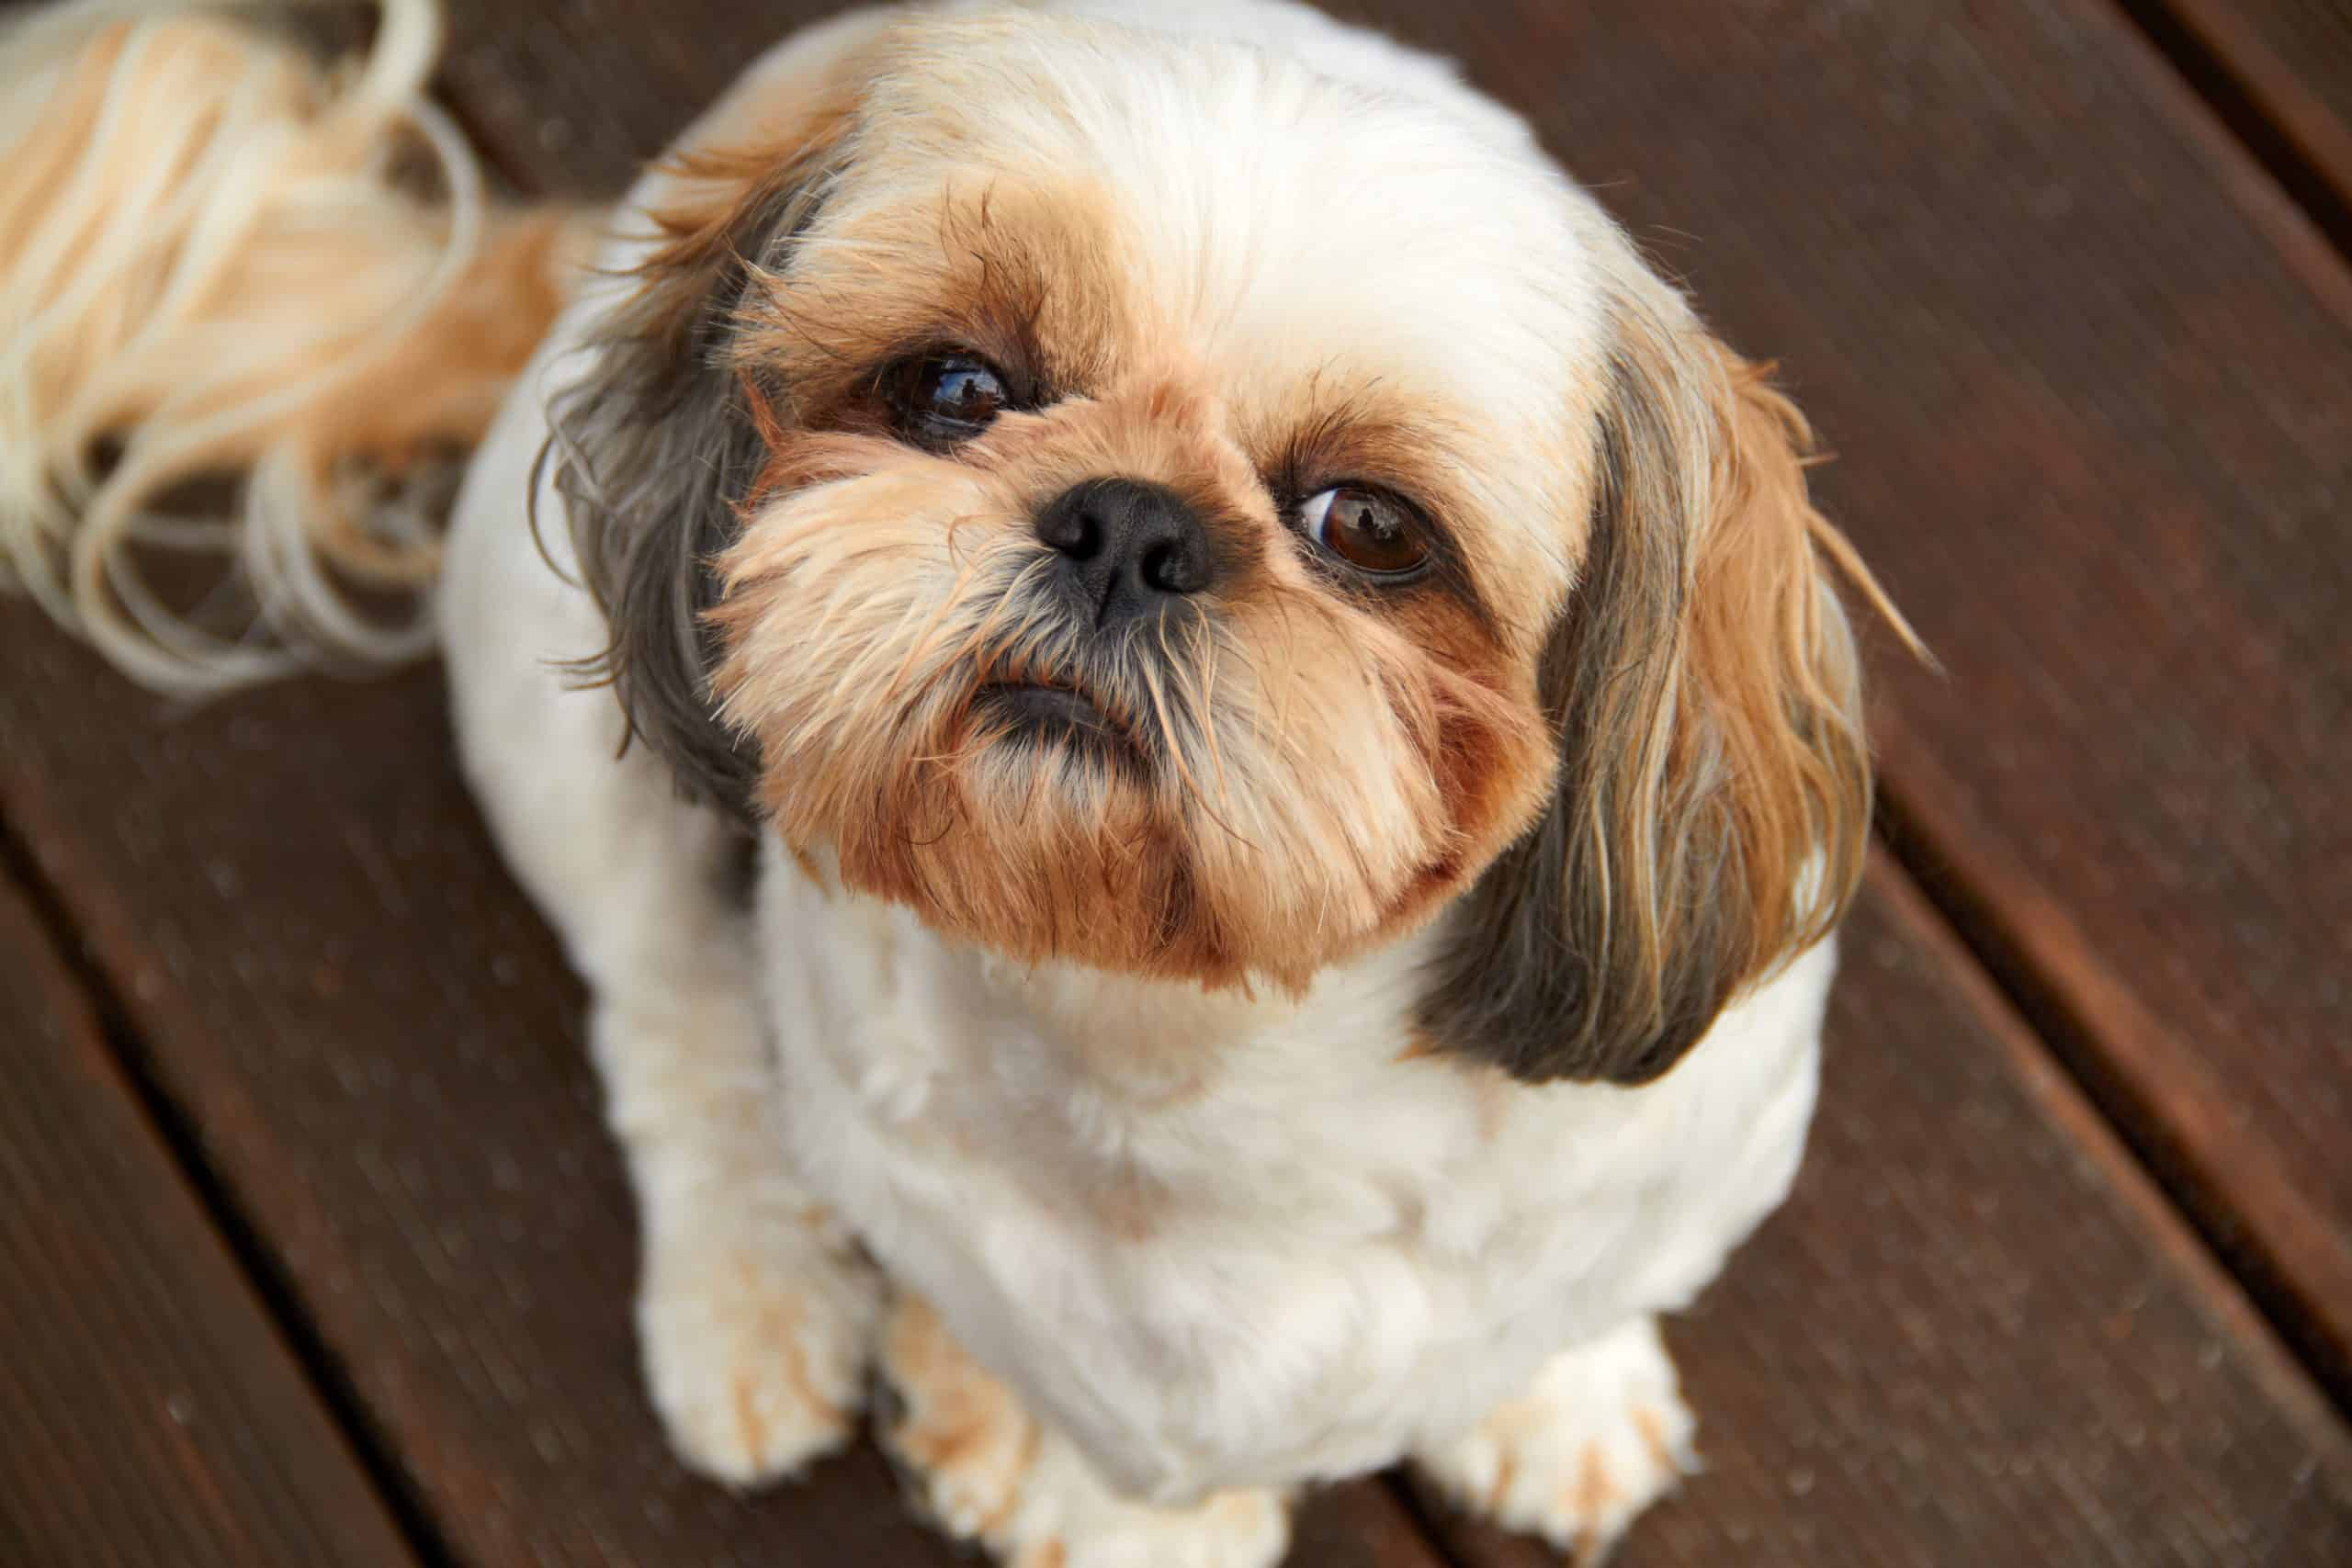 Dog breeds like the Shih-Tzu are prone to dog tear stains.